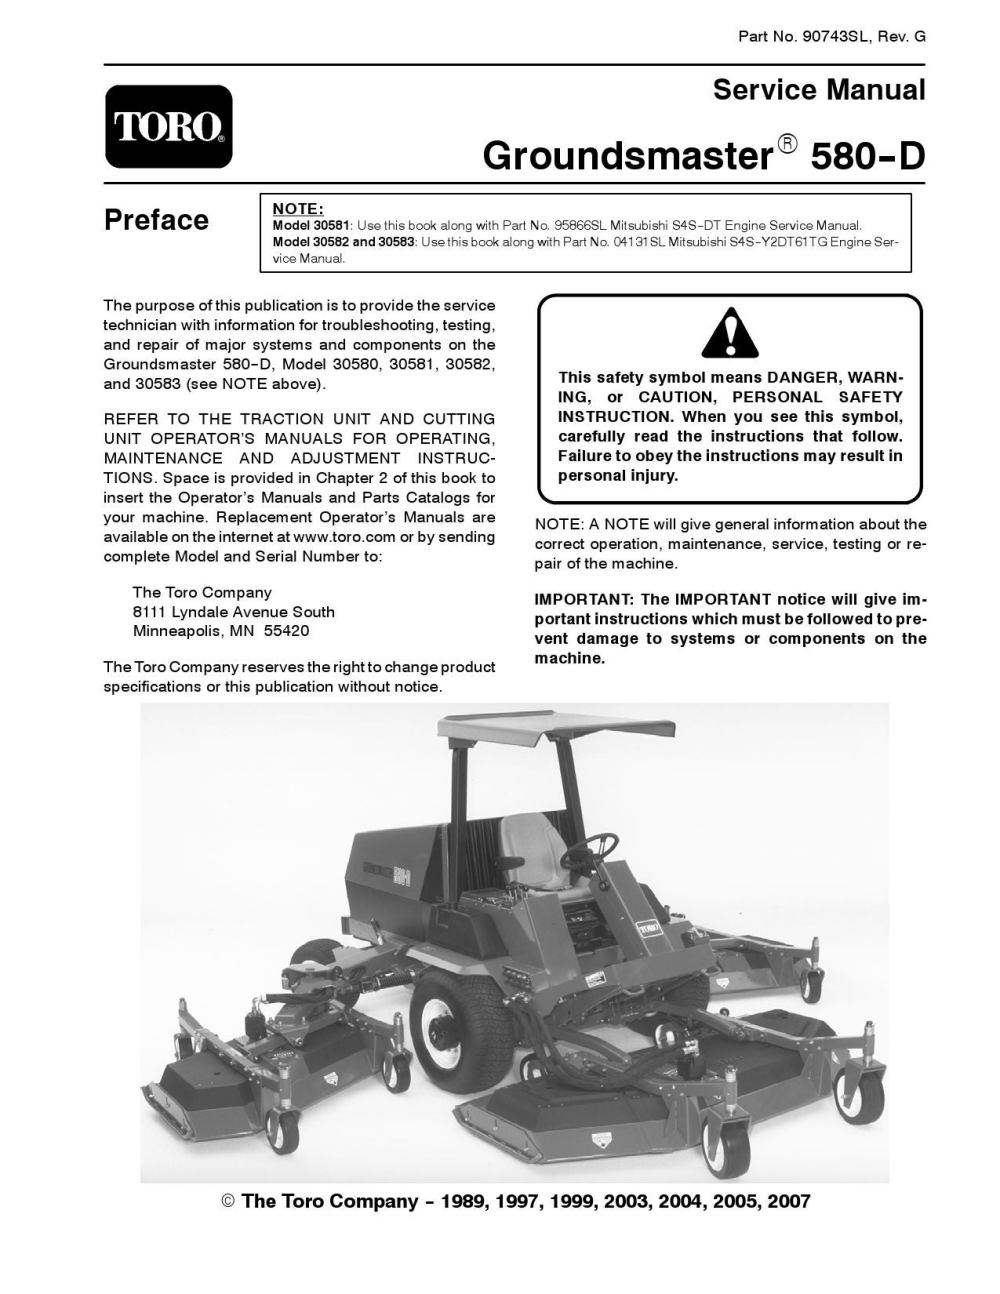 medium resolution of 90743sl pdf groundsmaster 580 d rev g dec 2007 by negimachi negimachi issuu